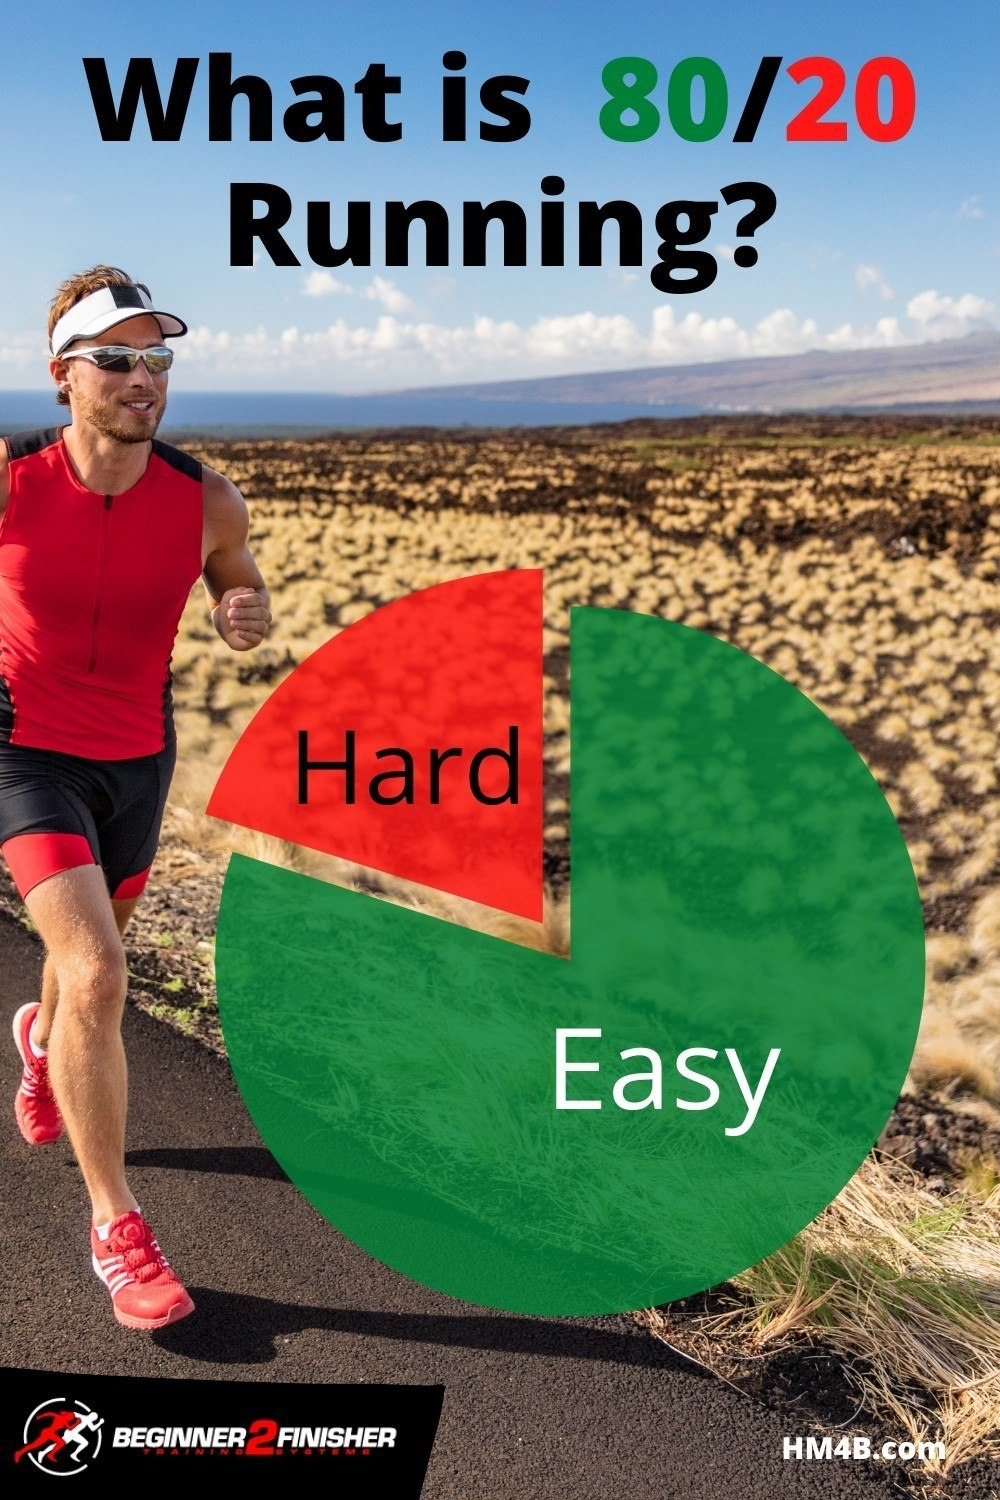 What is 80/20 Running? How Can I Benefit From It?